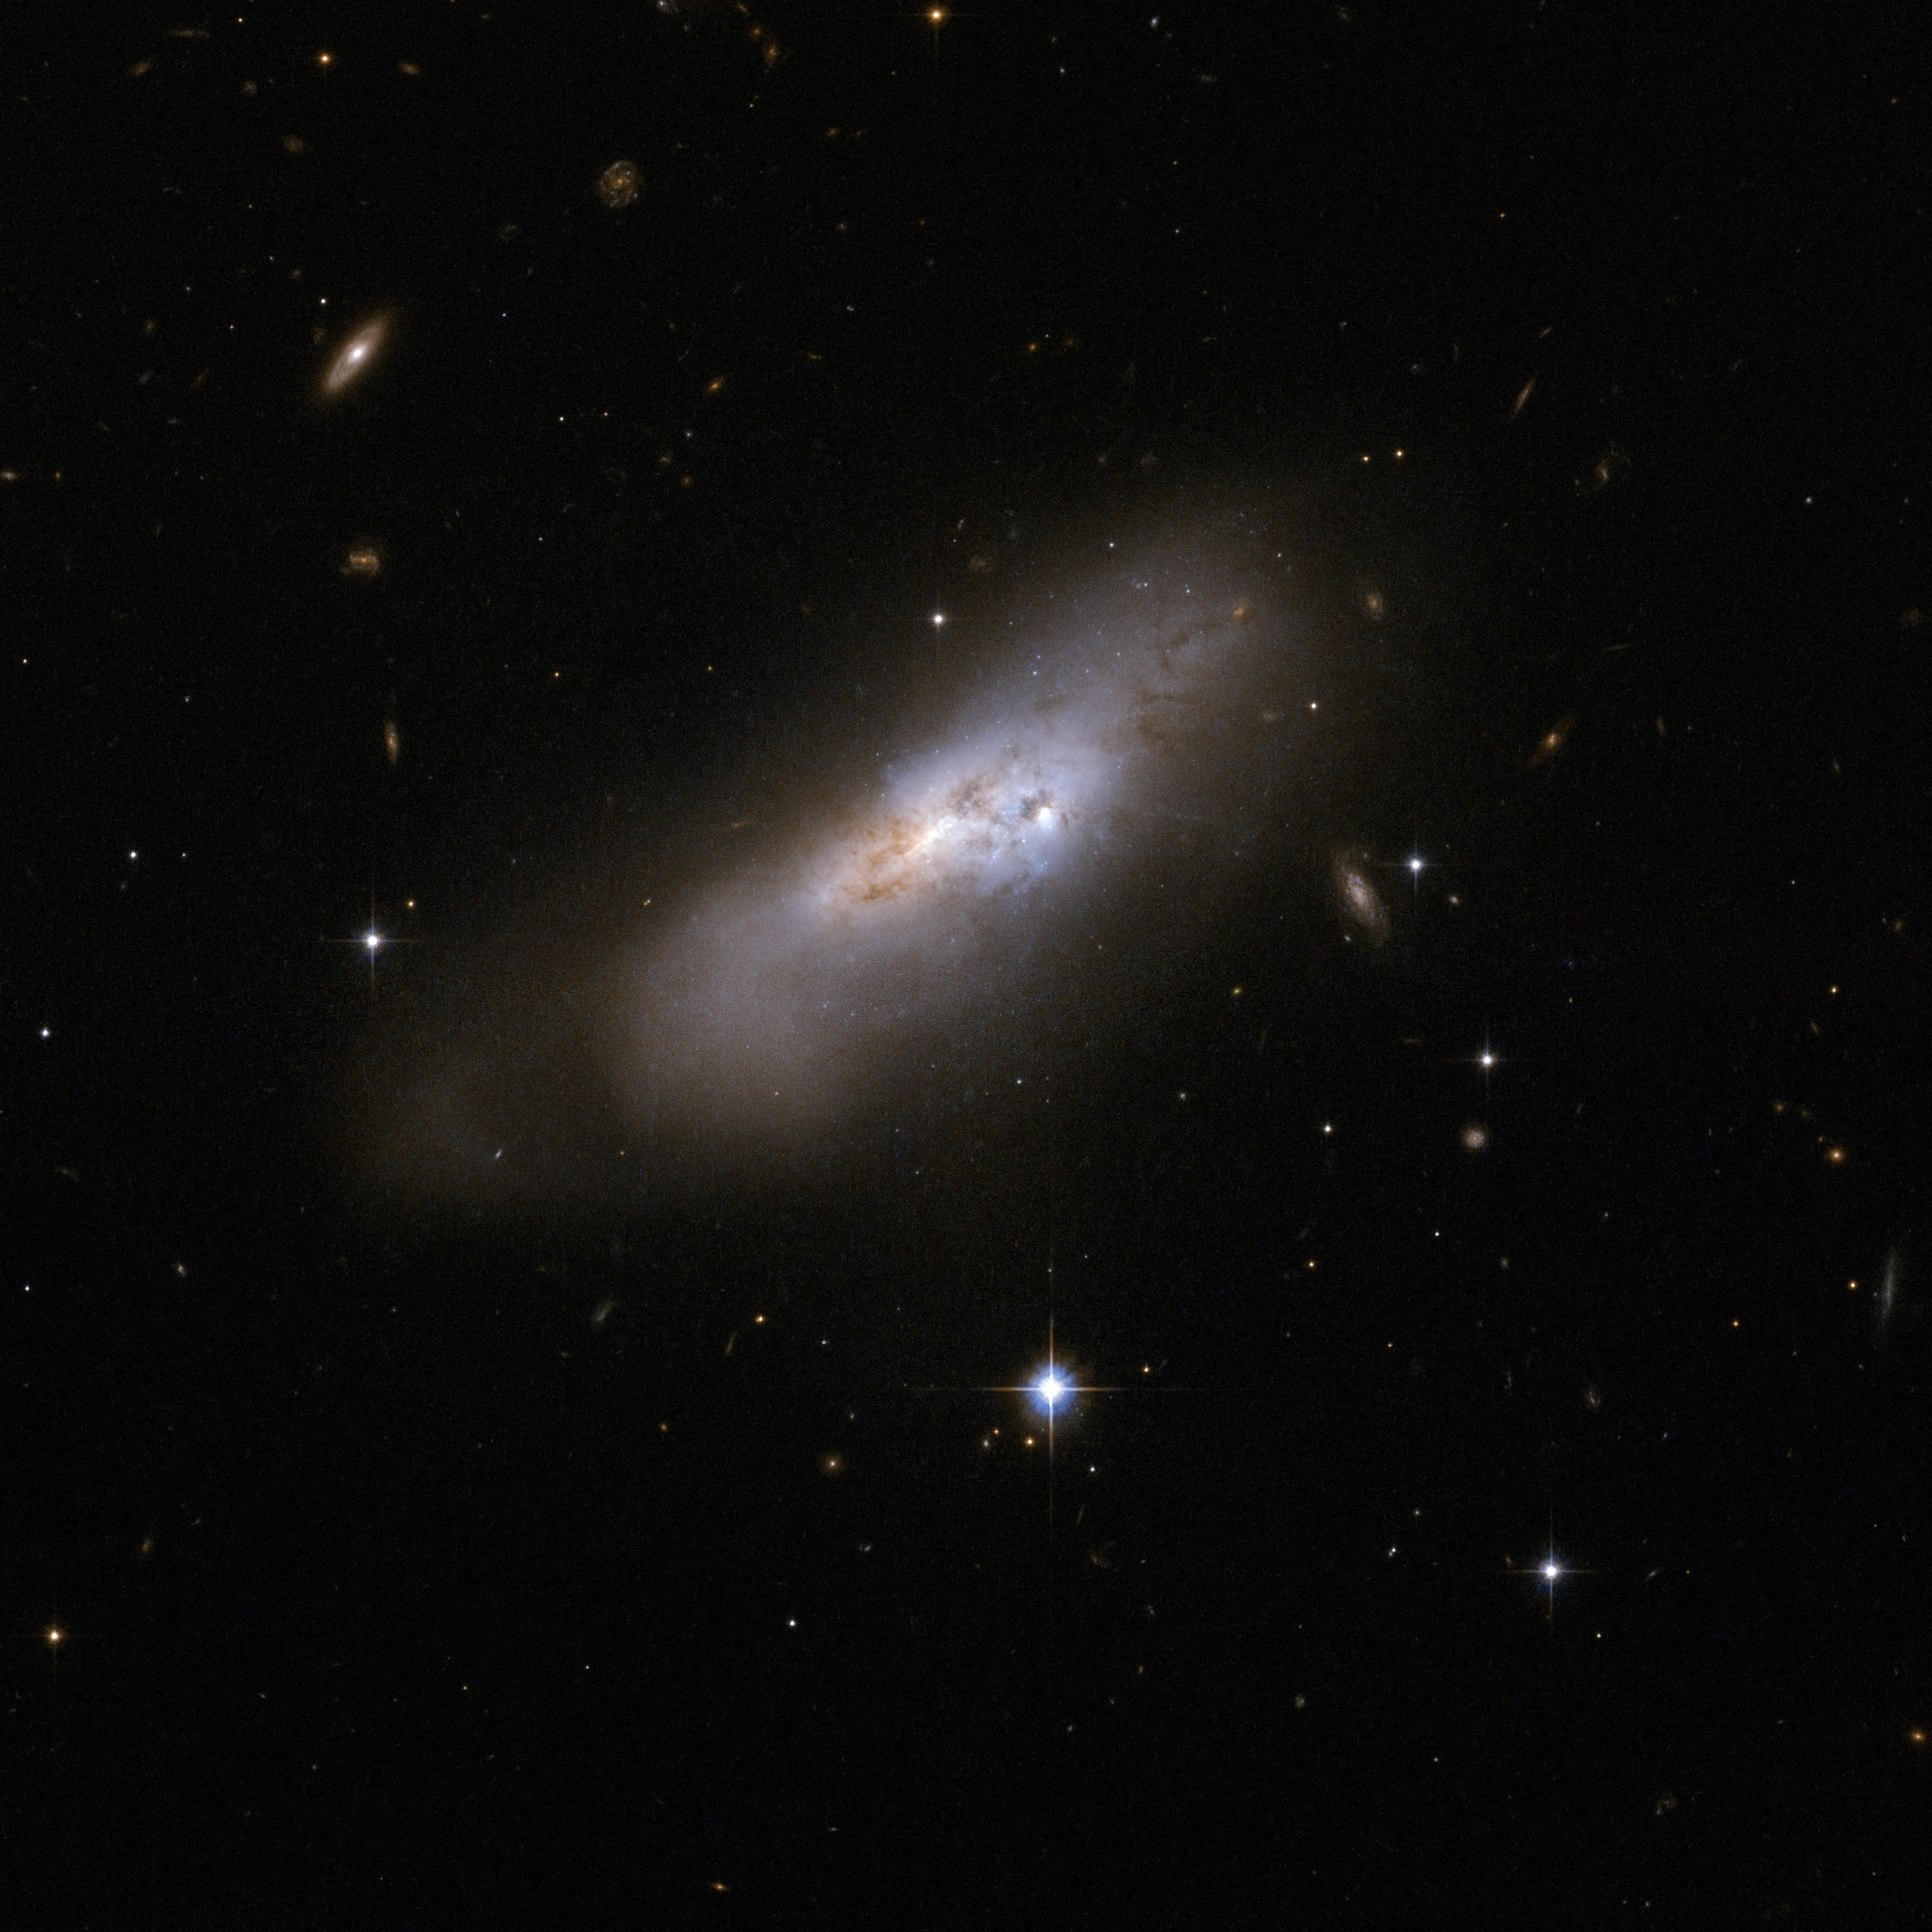 Hubble Interacting Galaxy ESO 507-70 (2008-04-24)